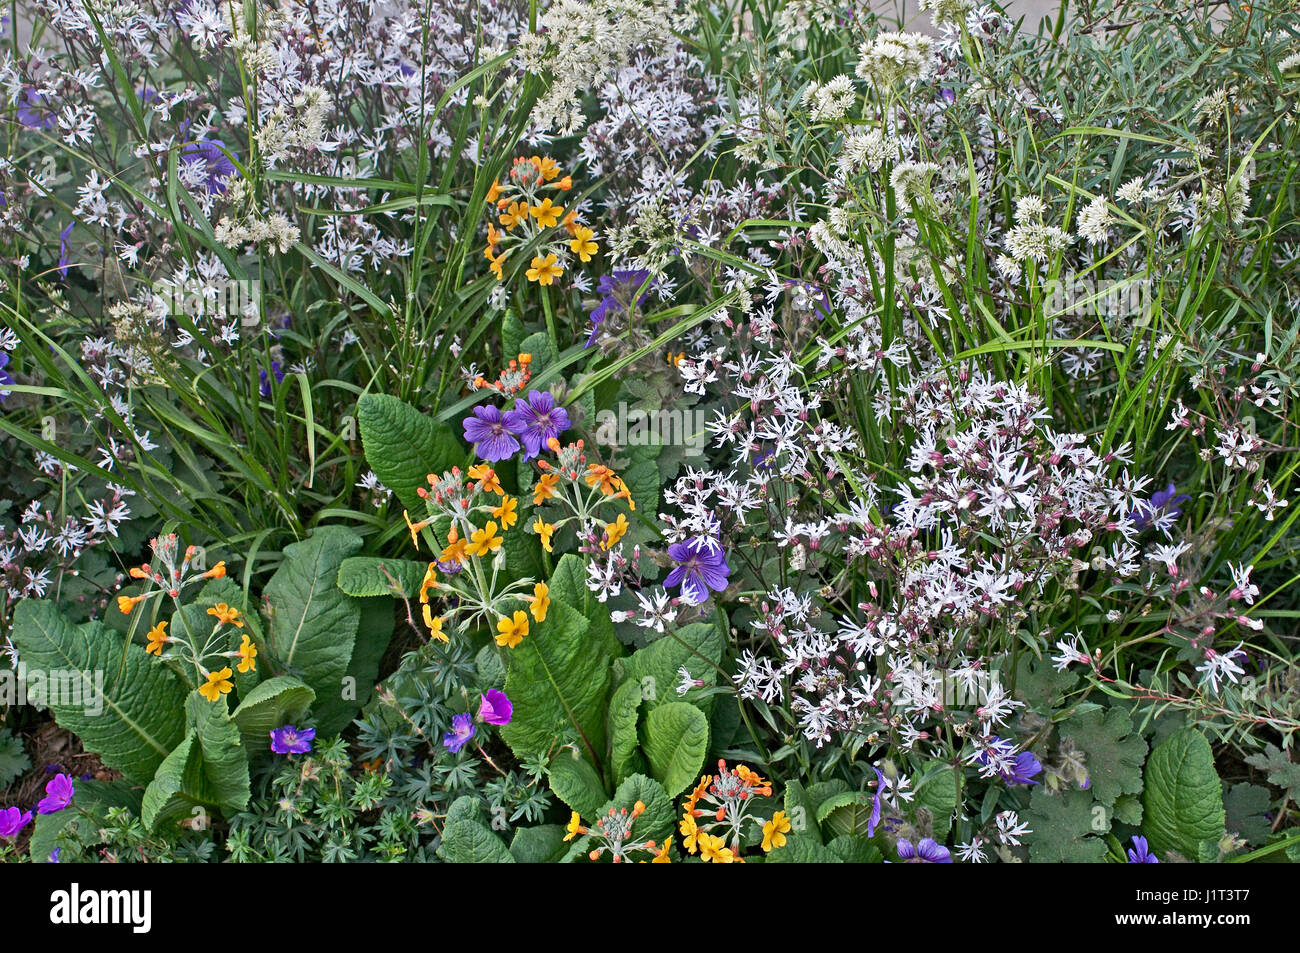 Close up of a flower border with Primula and white flowers - Stock Image